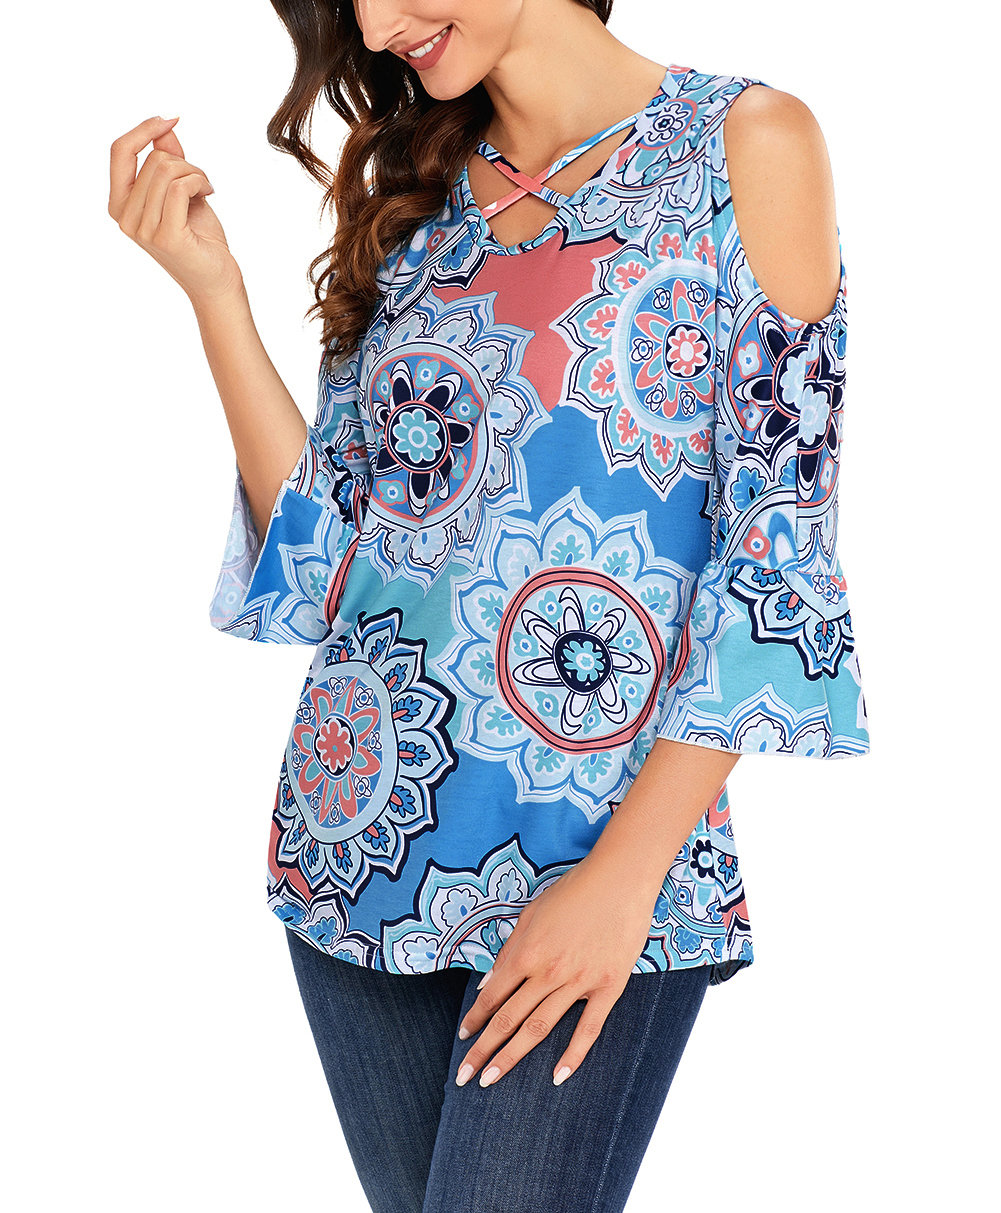 Large Size Mod Print Top with Ruffled ¾ Sleeves